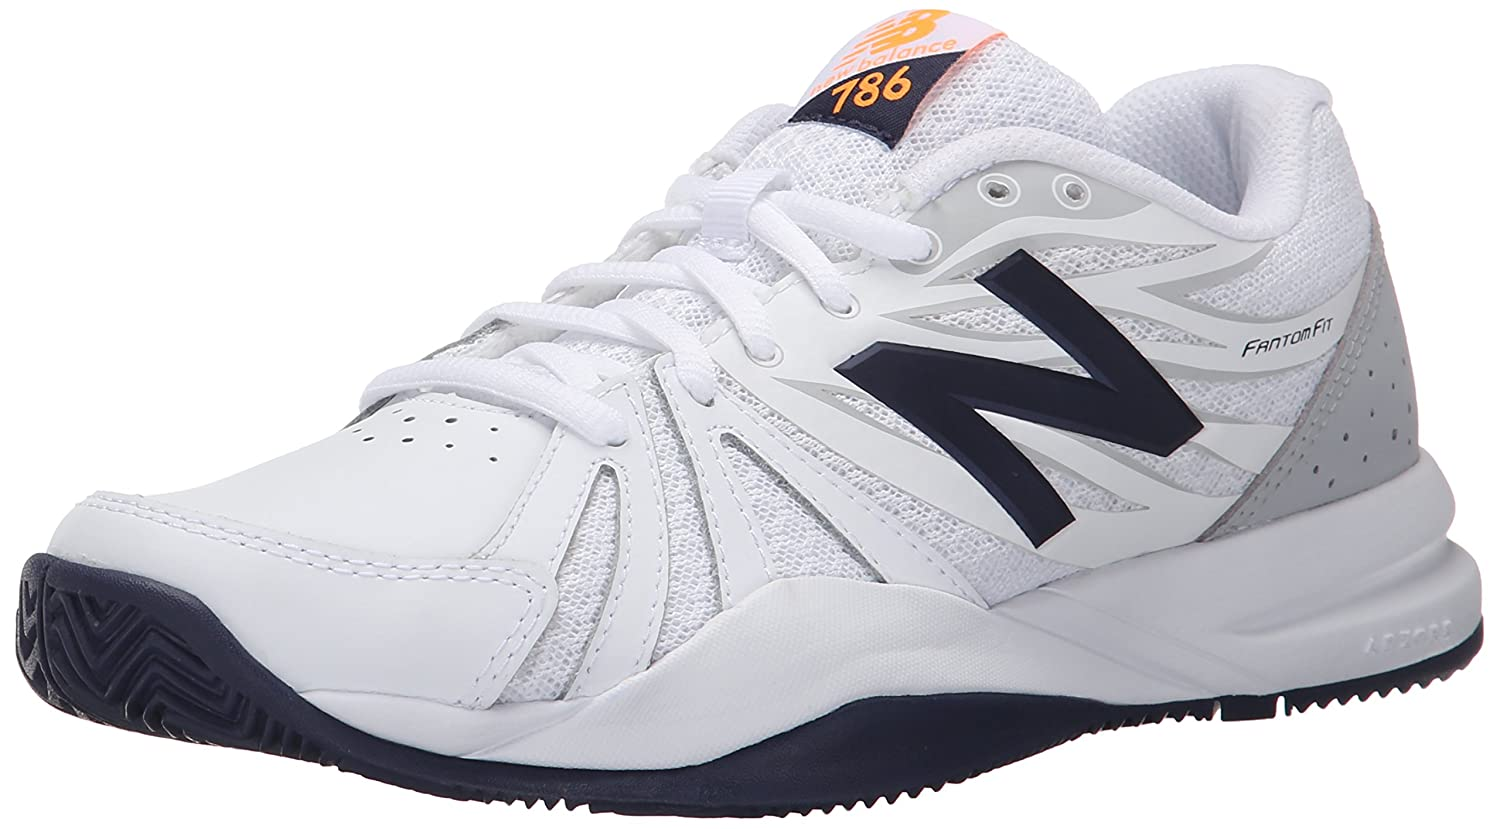 New Balance Women's 786v2 Cushioning Tennis Shoe B00Z7KMAVA 9 D US|White/Blue